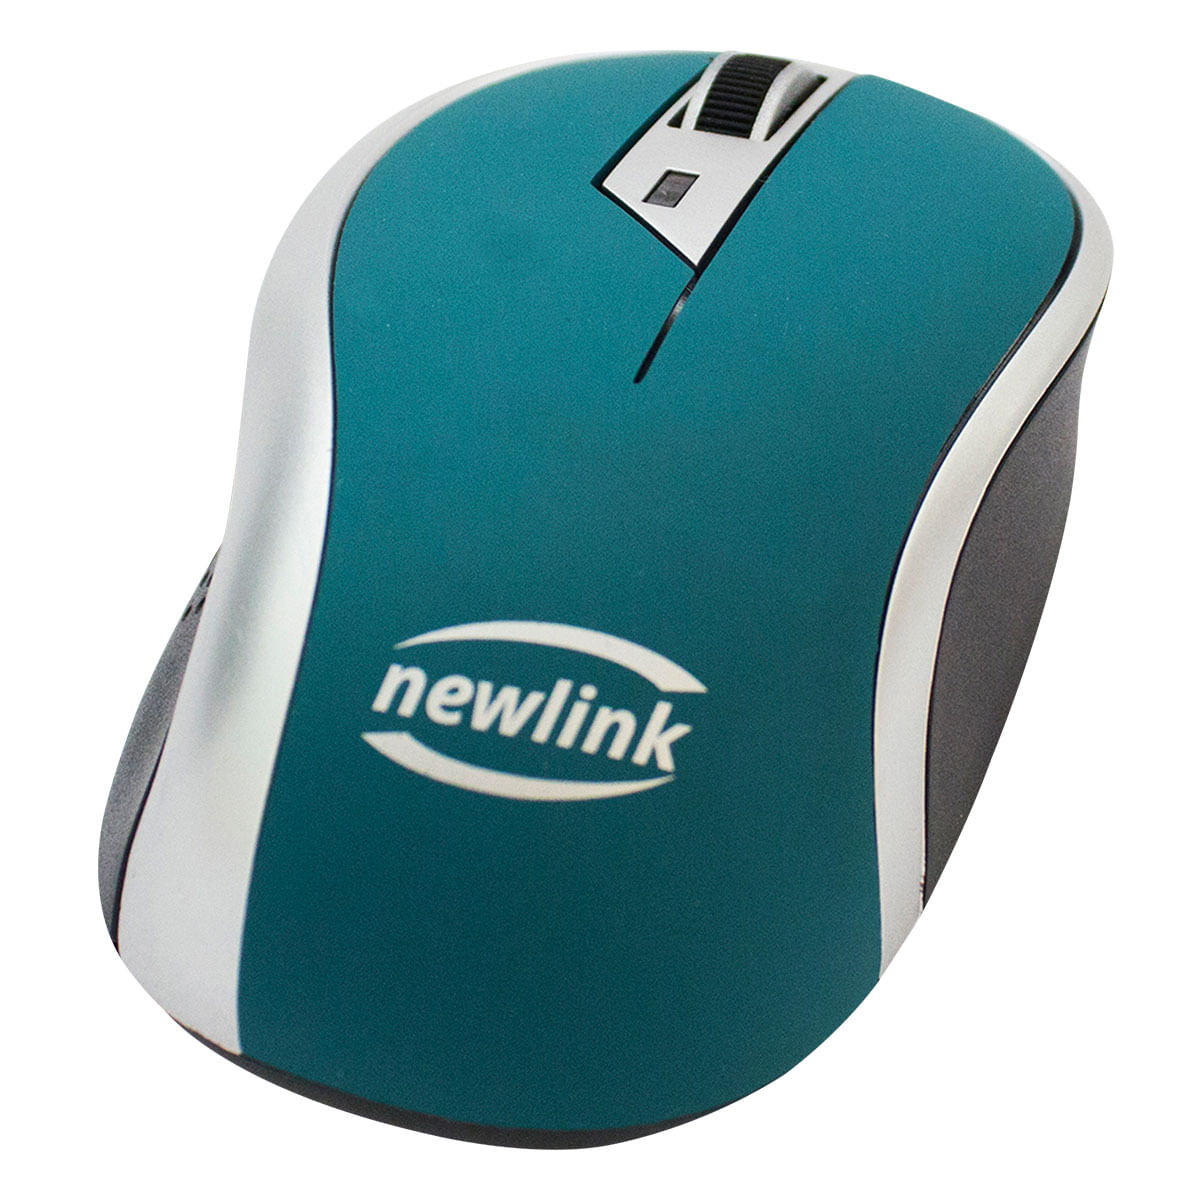 Mouse Mo113nl Multilaser